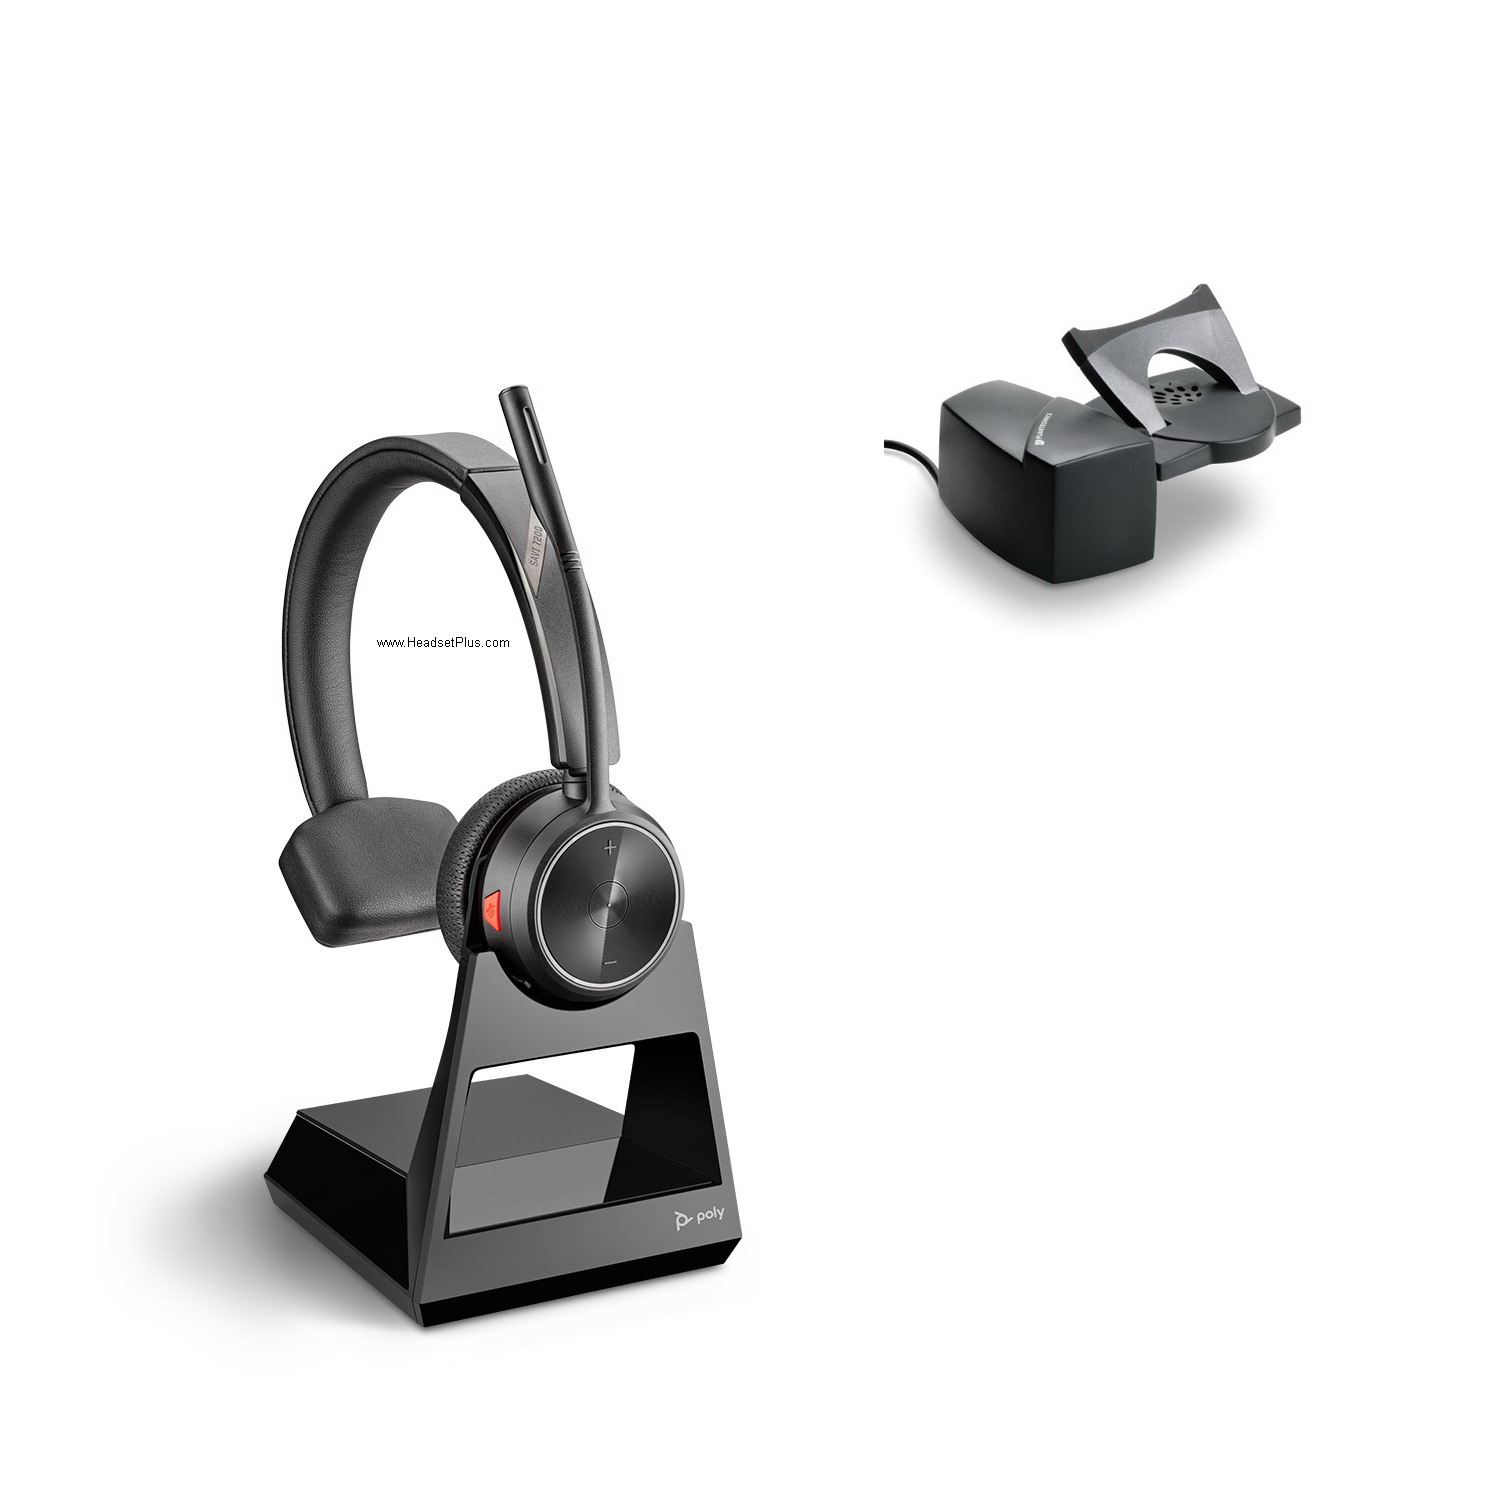 Poly Savi 7210+HL10 Wireless Headset Combo Package